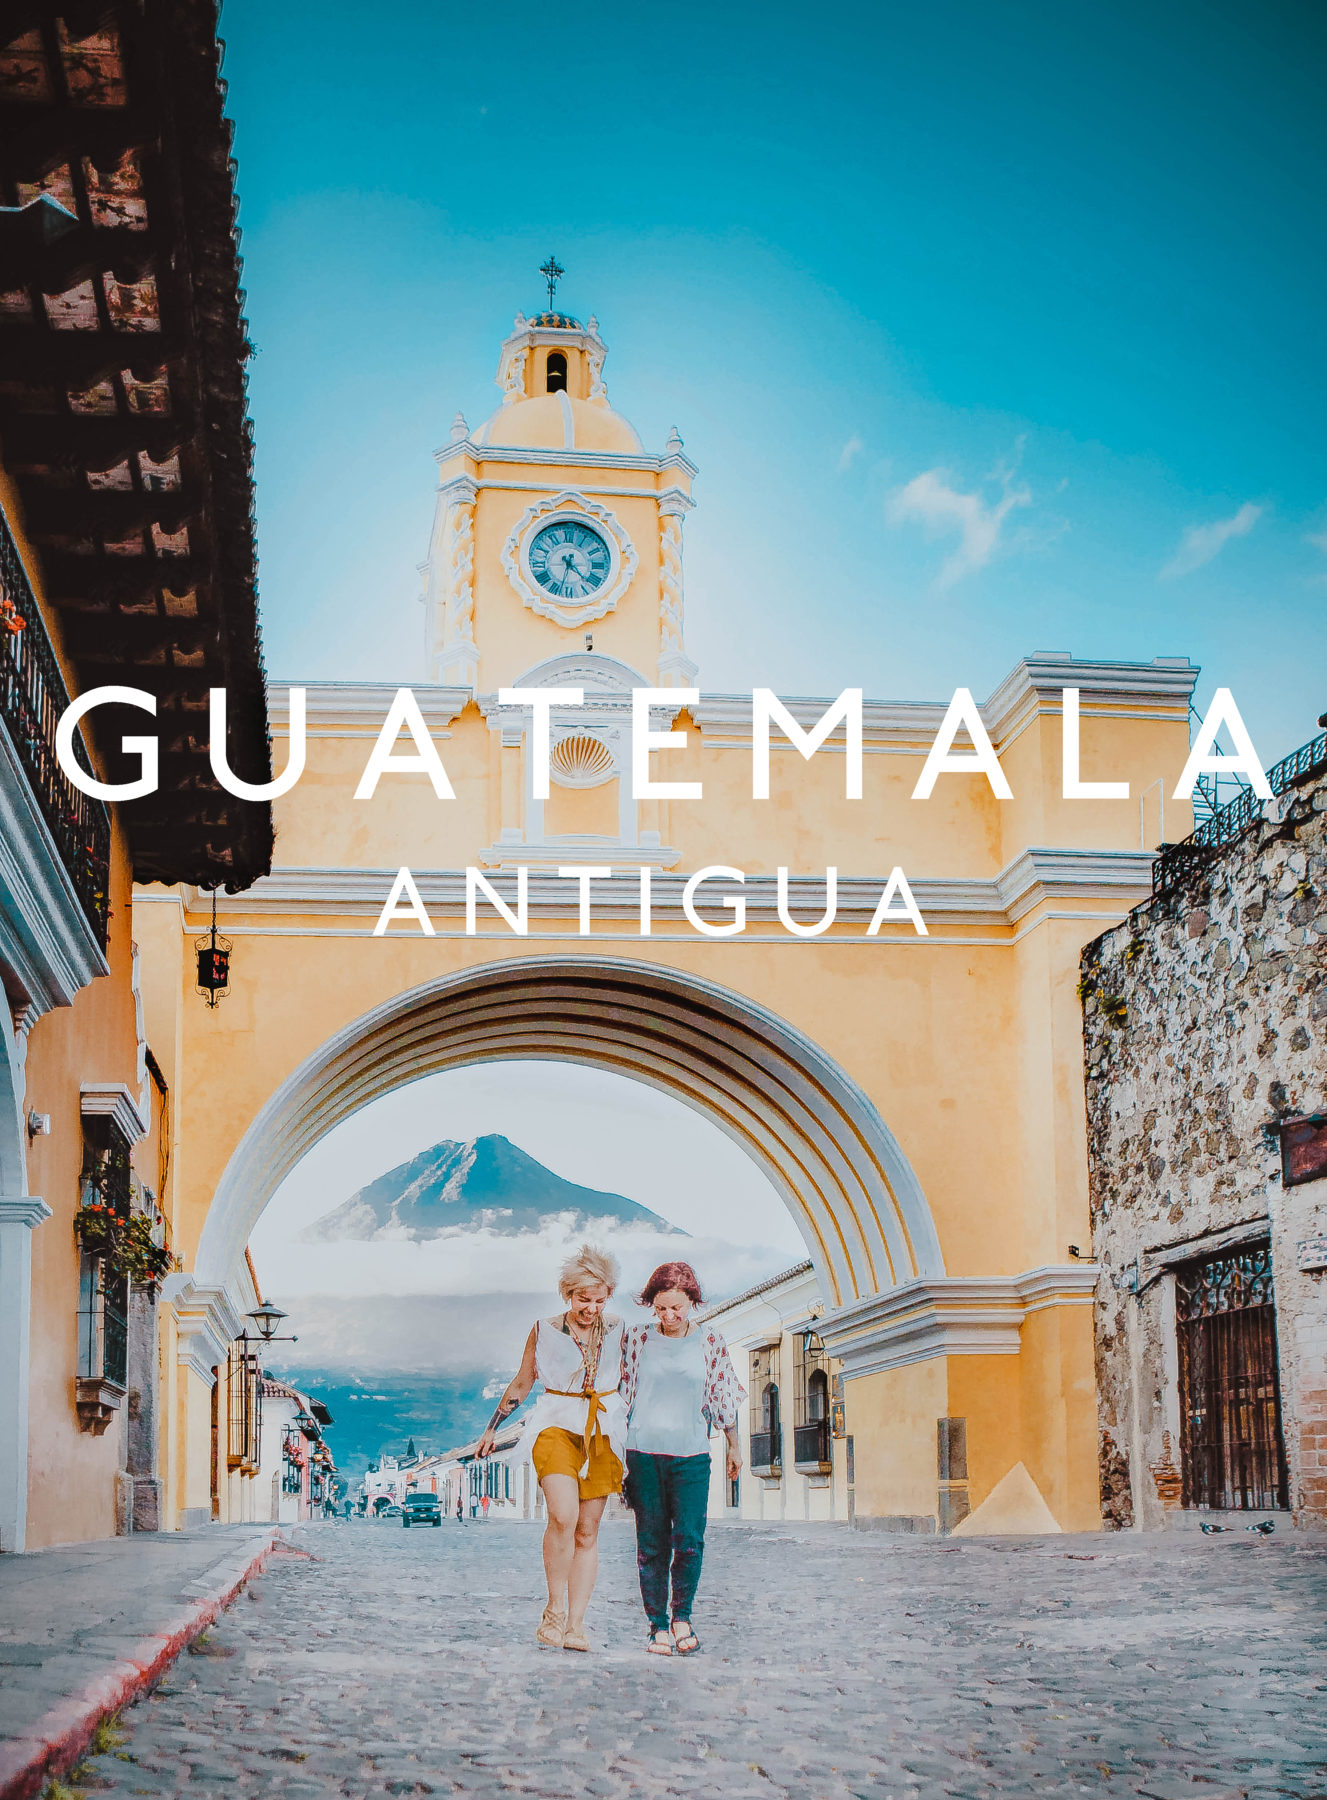 guatemala antigua colonian town exploring central america